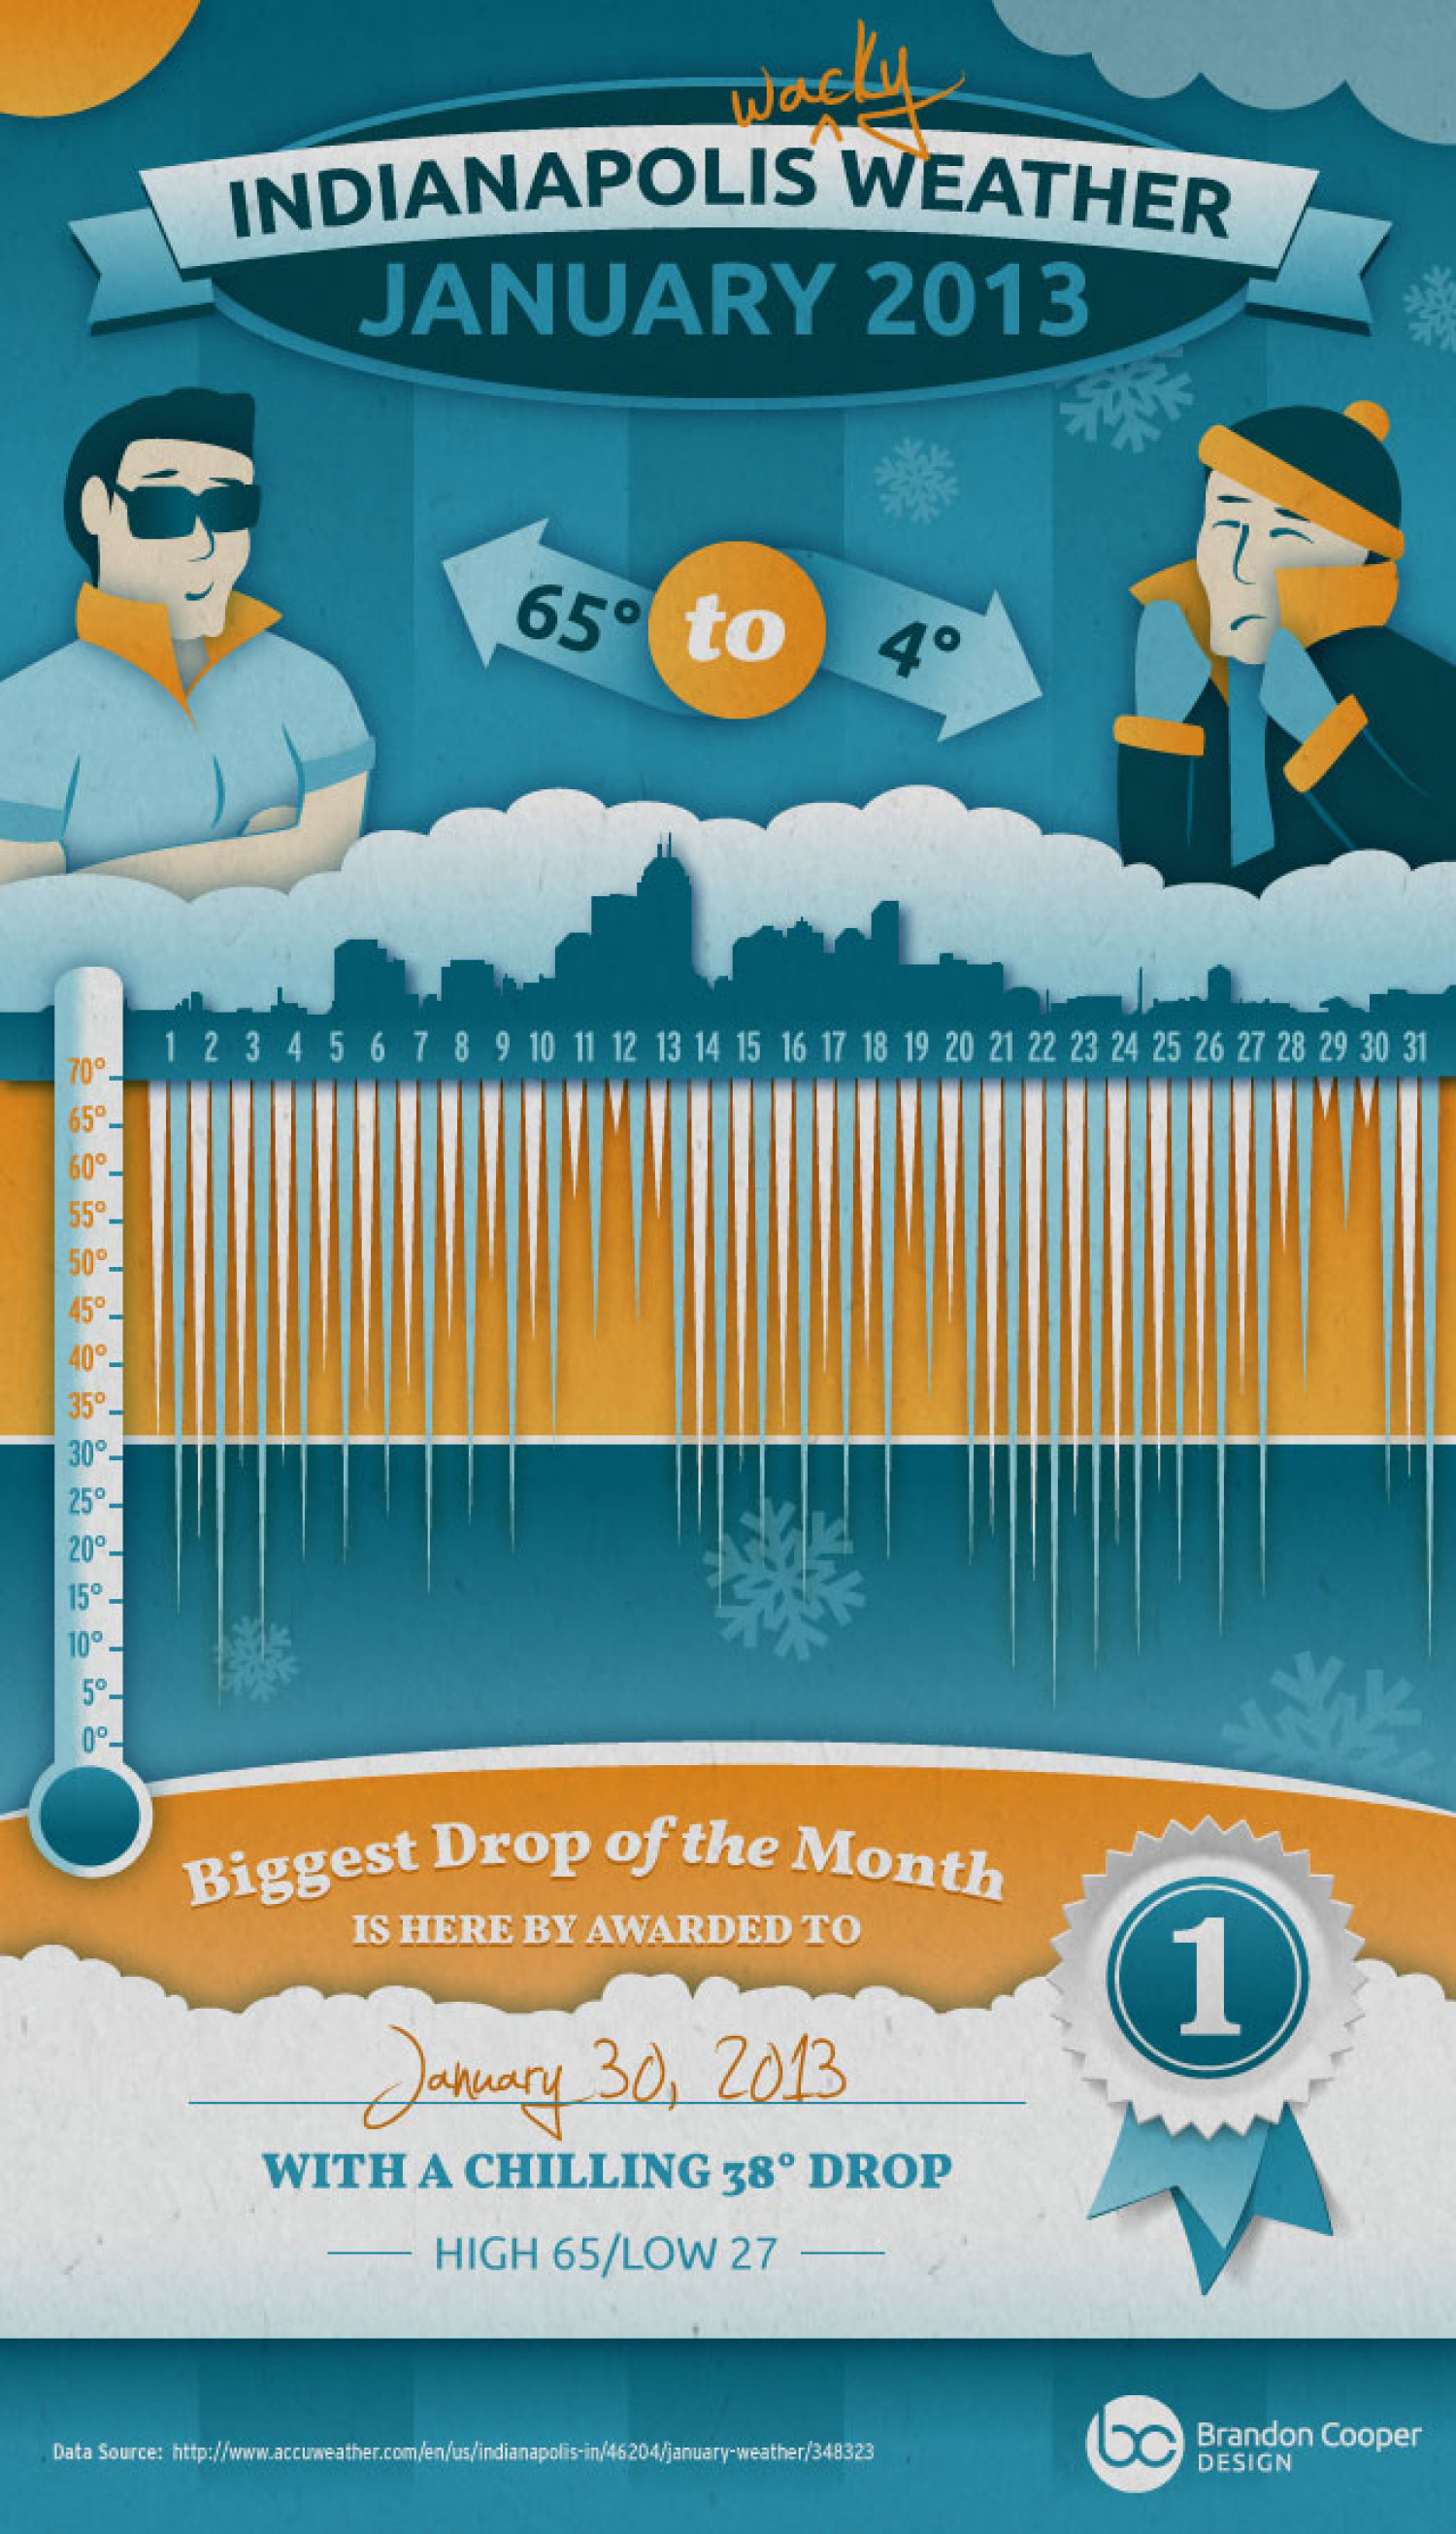 Indianapolis Wacky Weather Jan 2013 Infographic